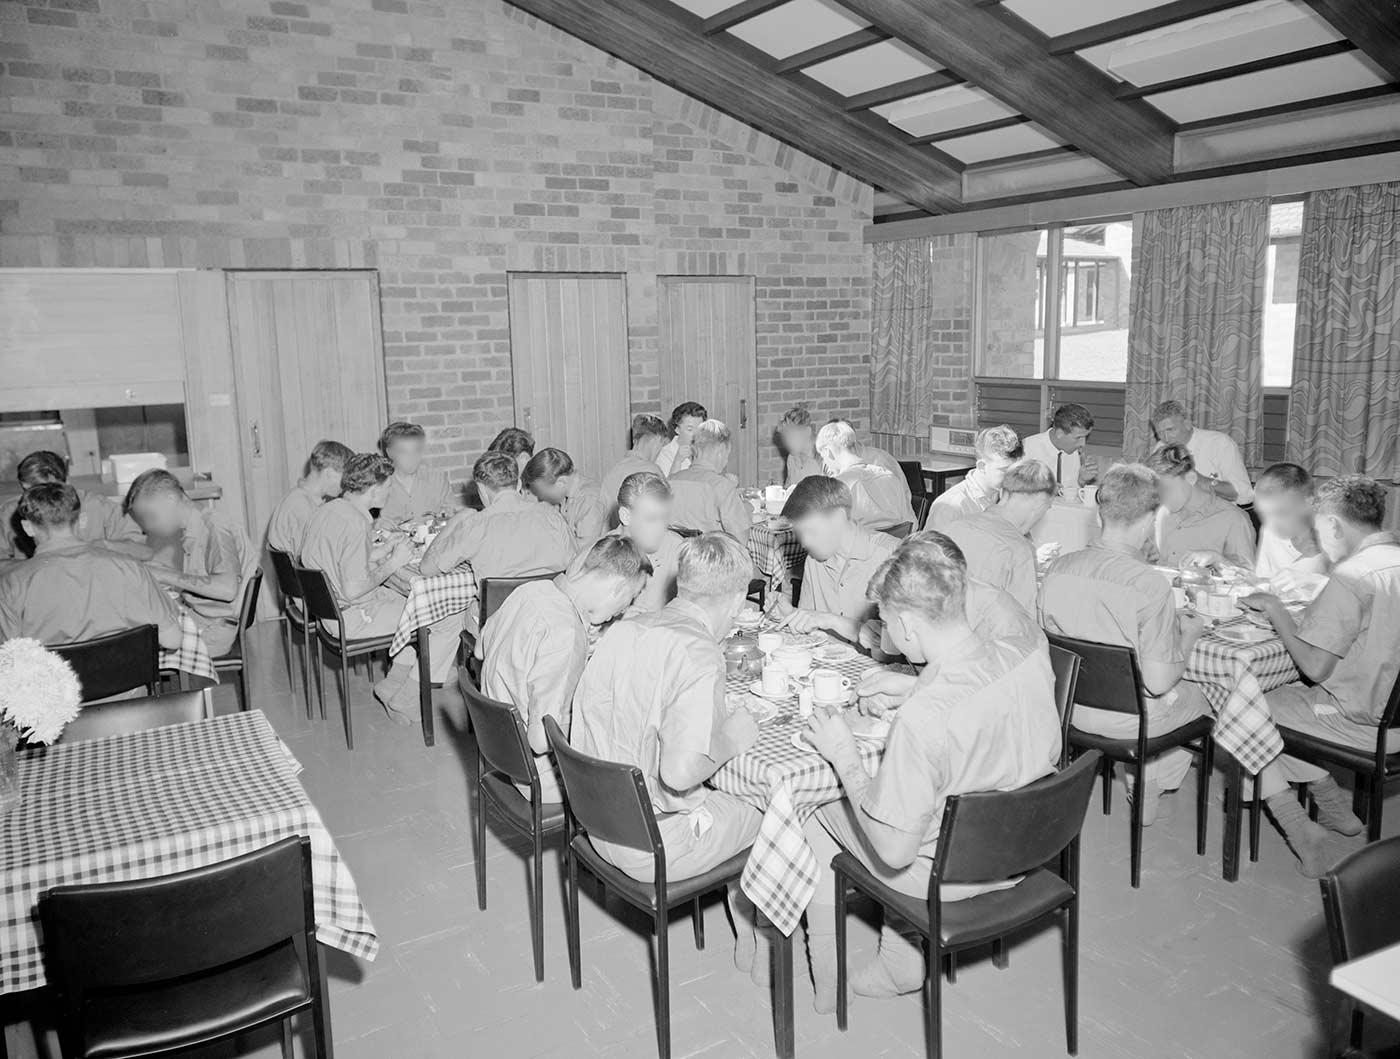 Black and white photo showing groups of teenage boys seated at dining tables. The tables are covered with checked tablecloths. The boys wear a uniform of short-sleeved shirts and shorts. They wear socks, but no shoes. - click to view larger image